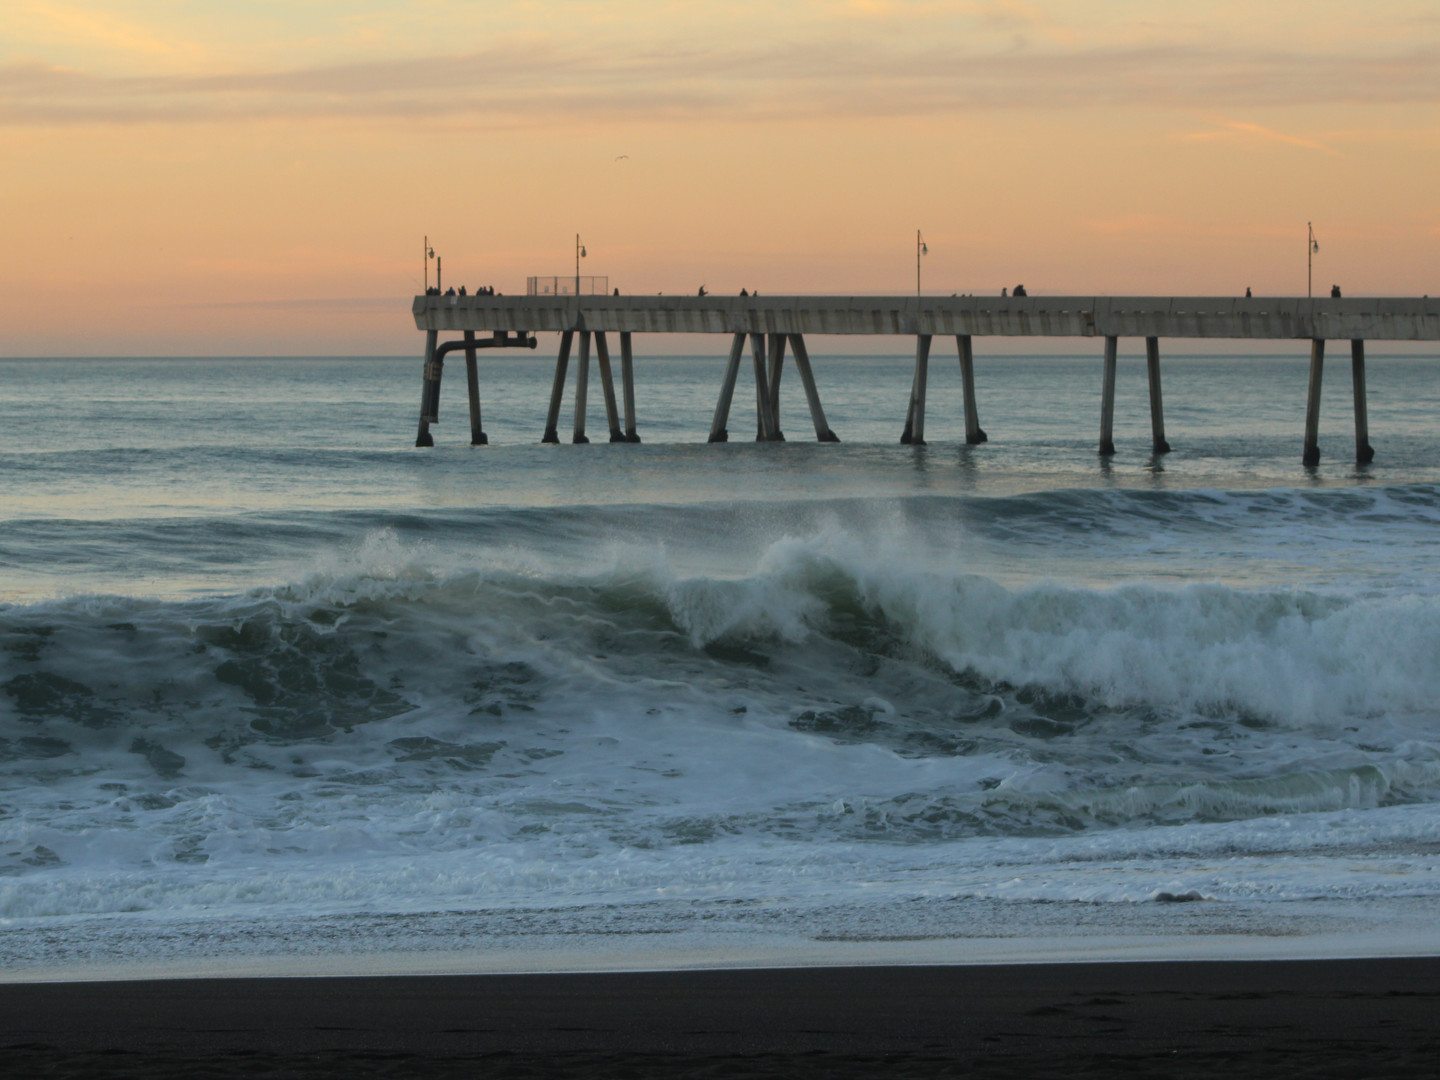 Waves at the Pier